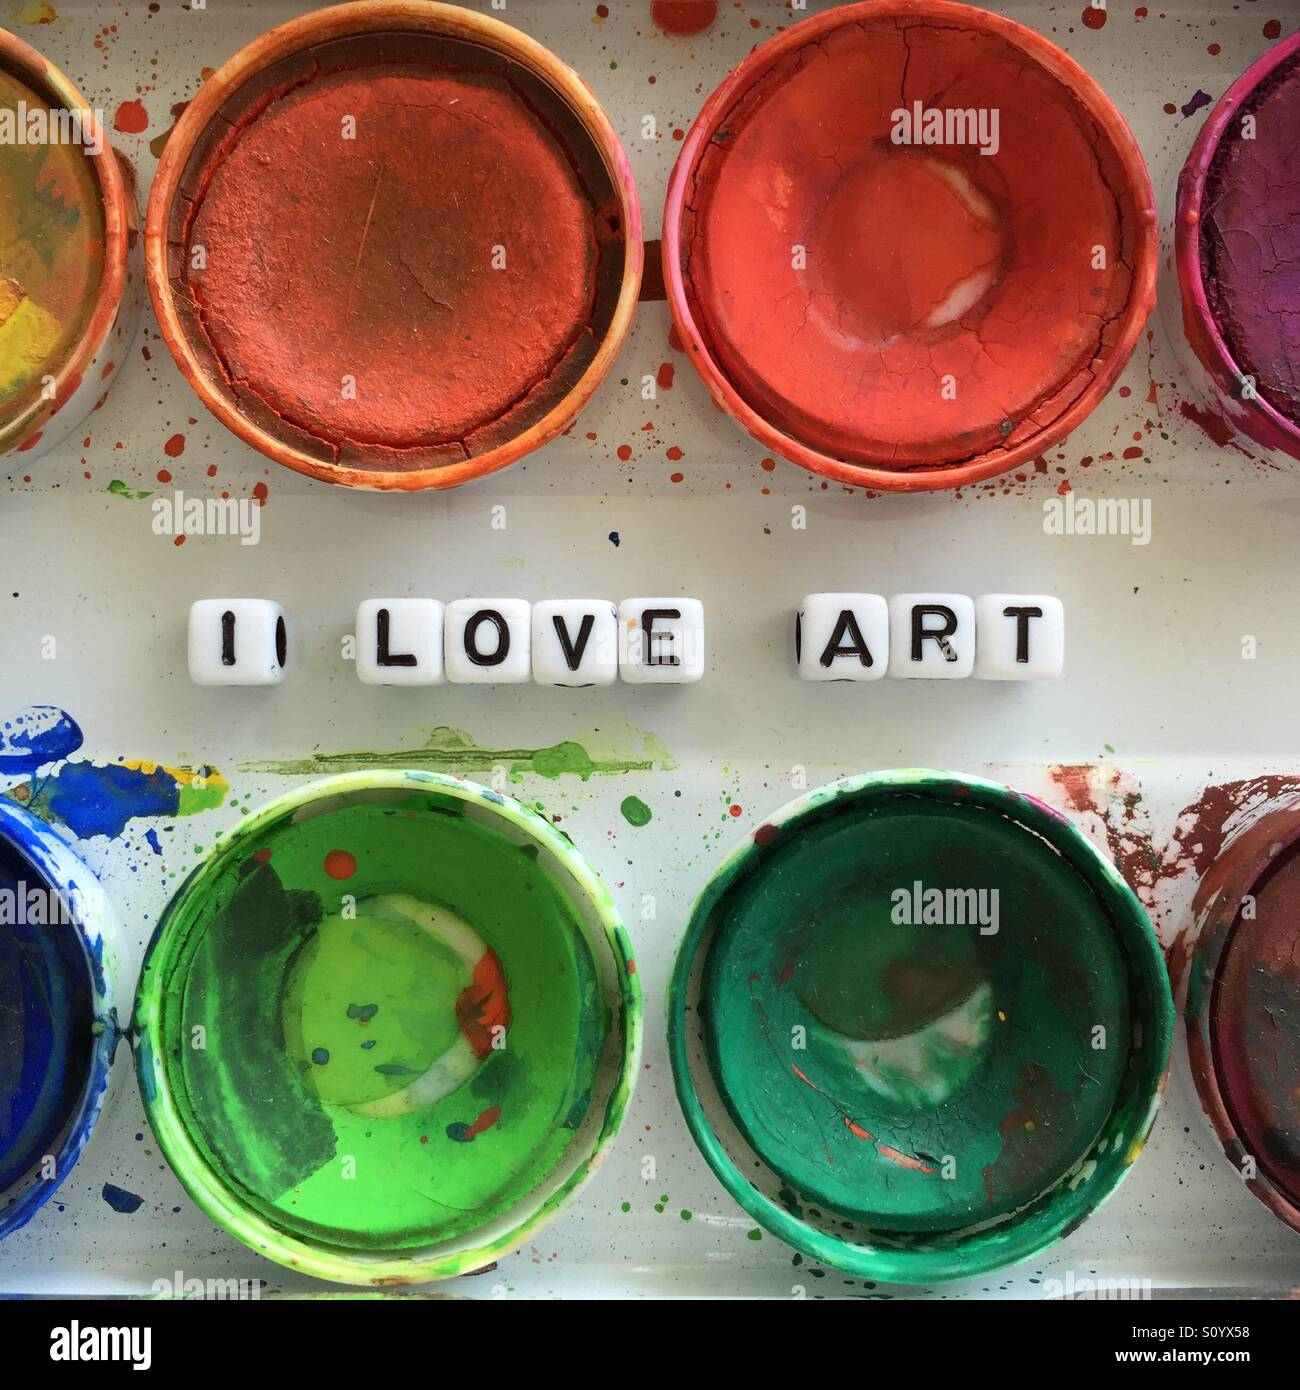 I love art - Stock Image